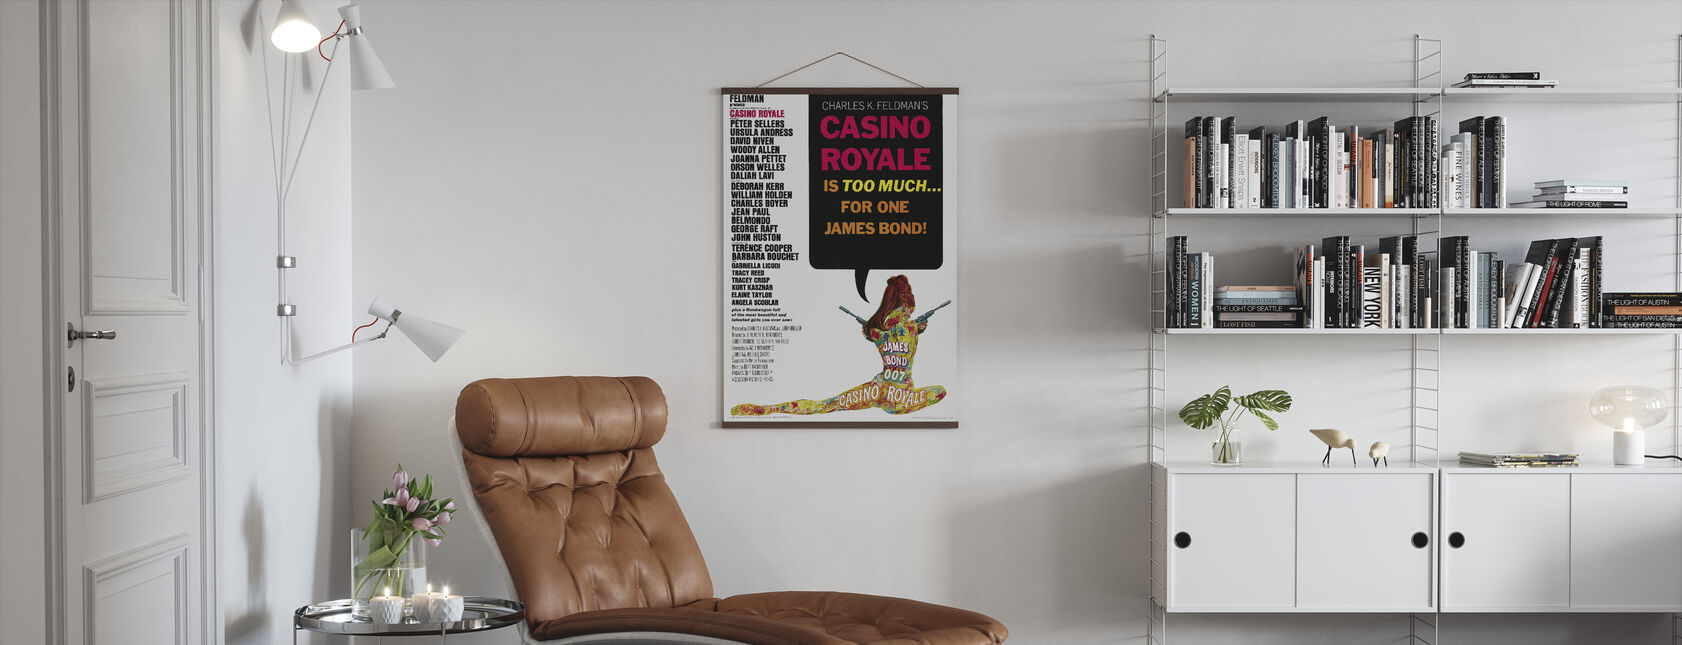 James Bond 007 Casino Royale - Poster - Living Room